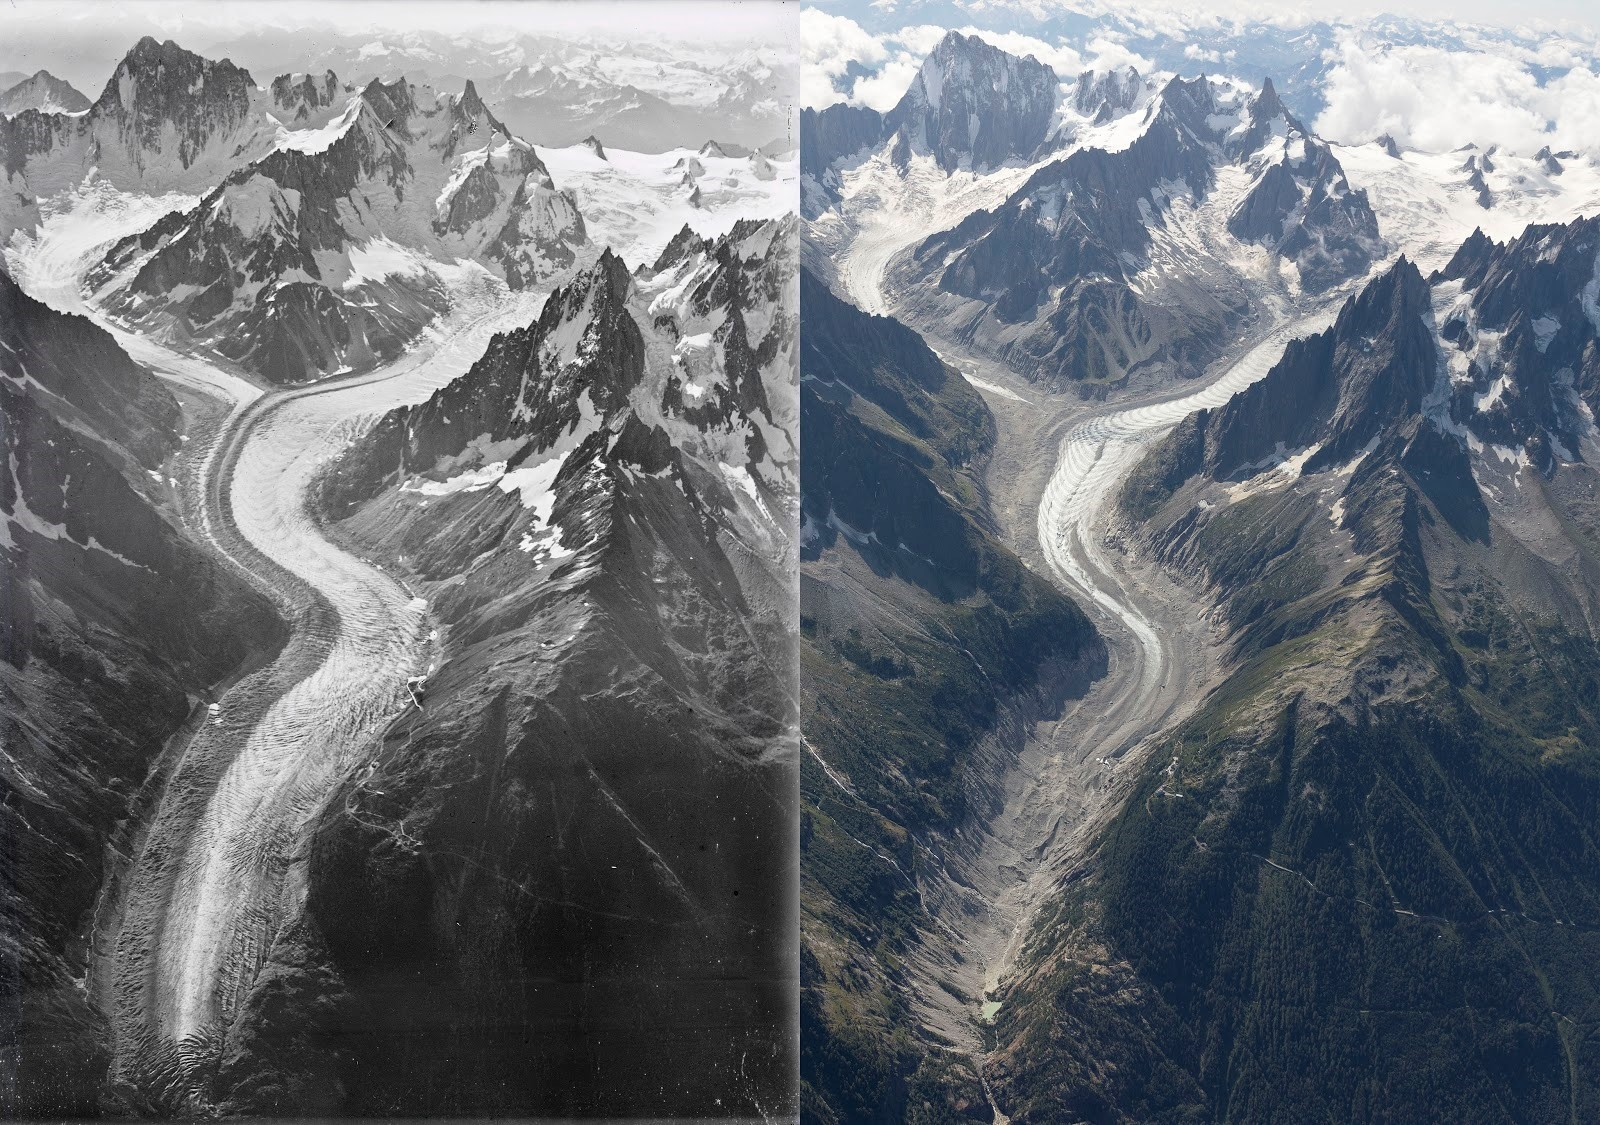 A century apart: the Mer de Glace glacier as it was in 2019, and today.